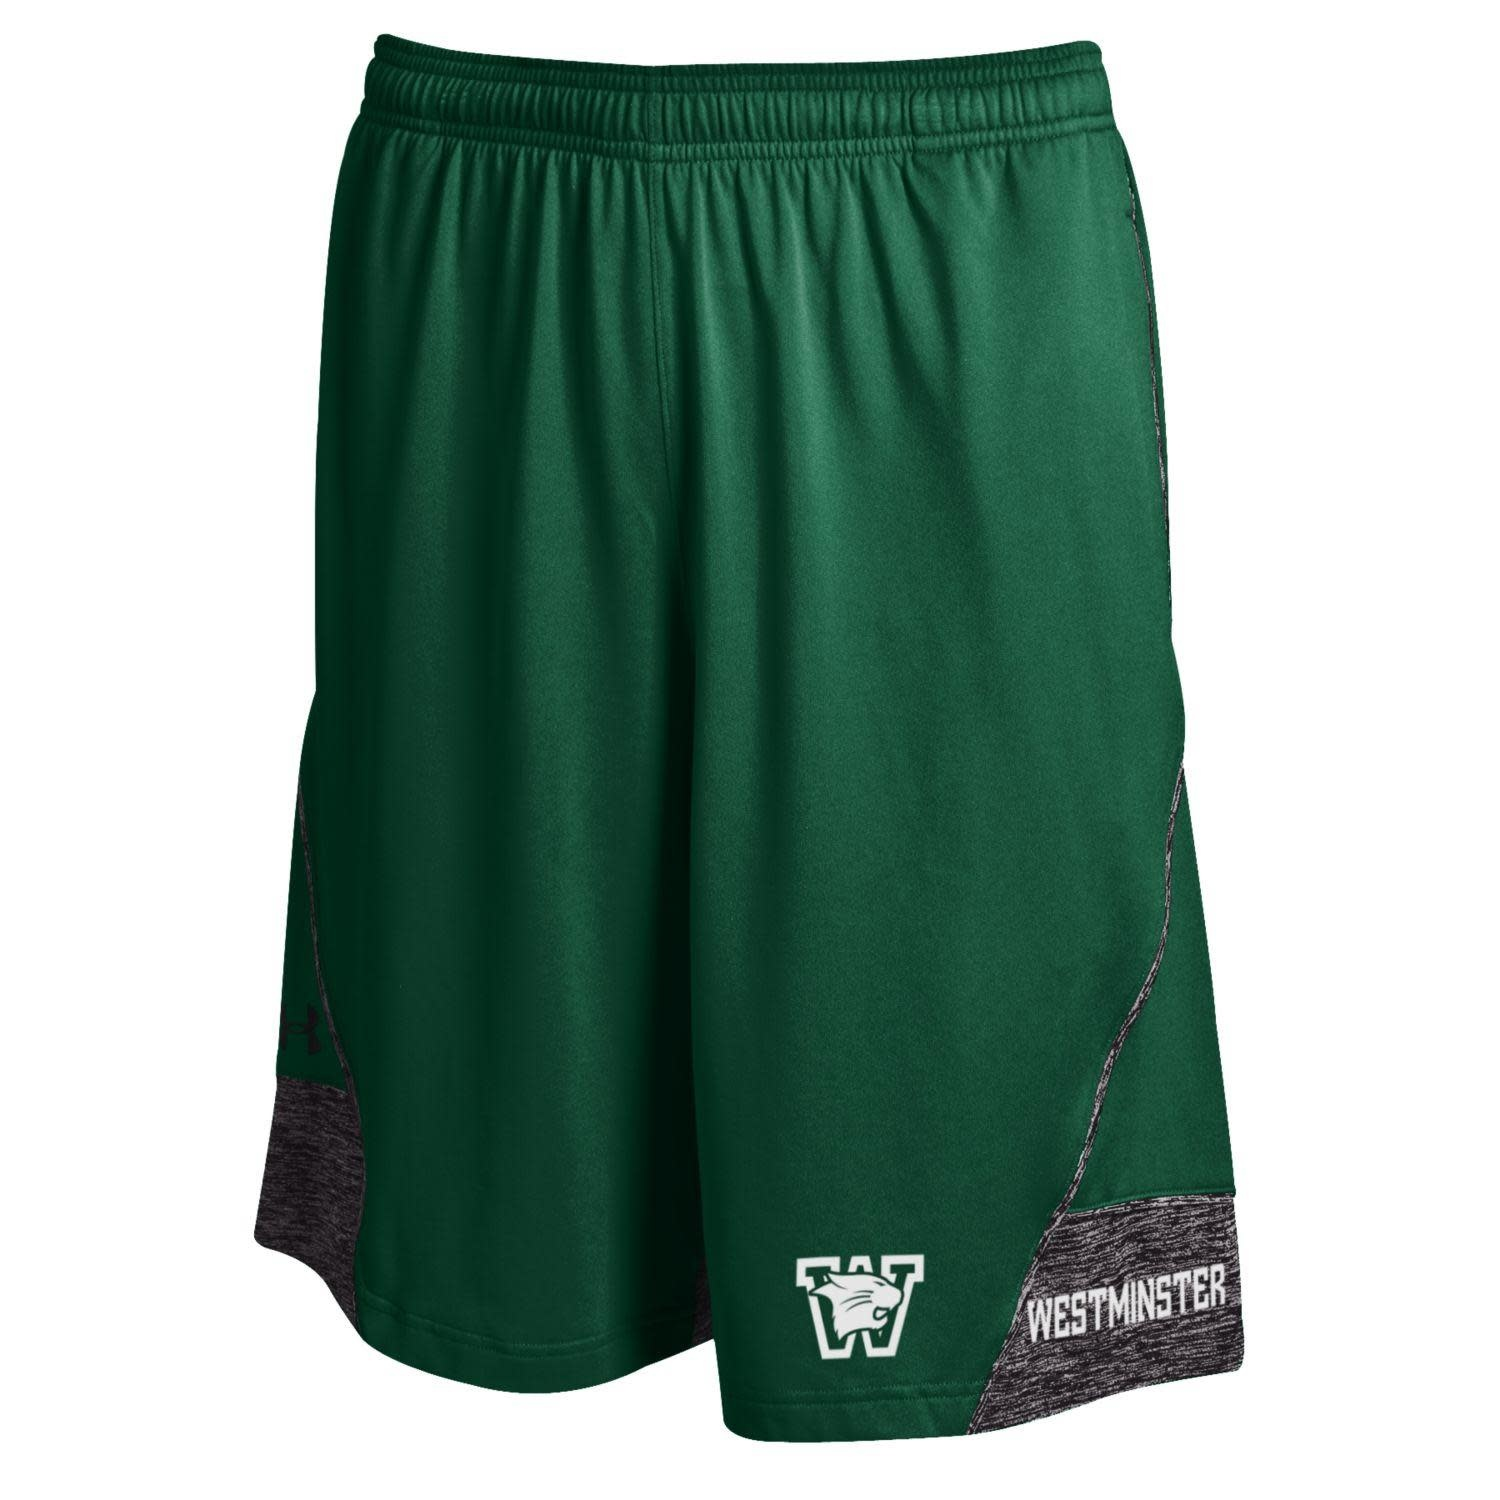 Under Armour Shorts: UA Tech Short - Forest/Gray - Wildcat head over W